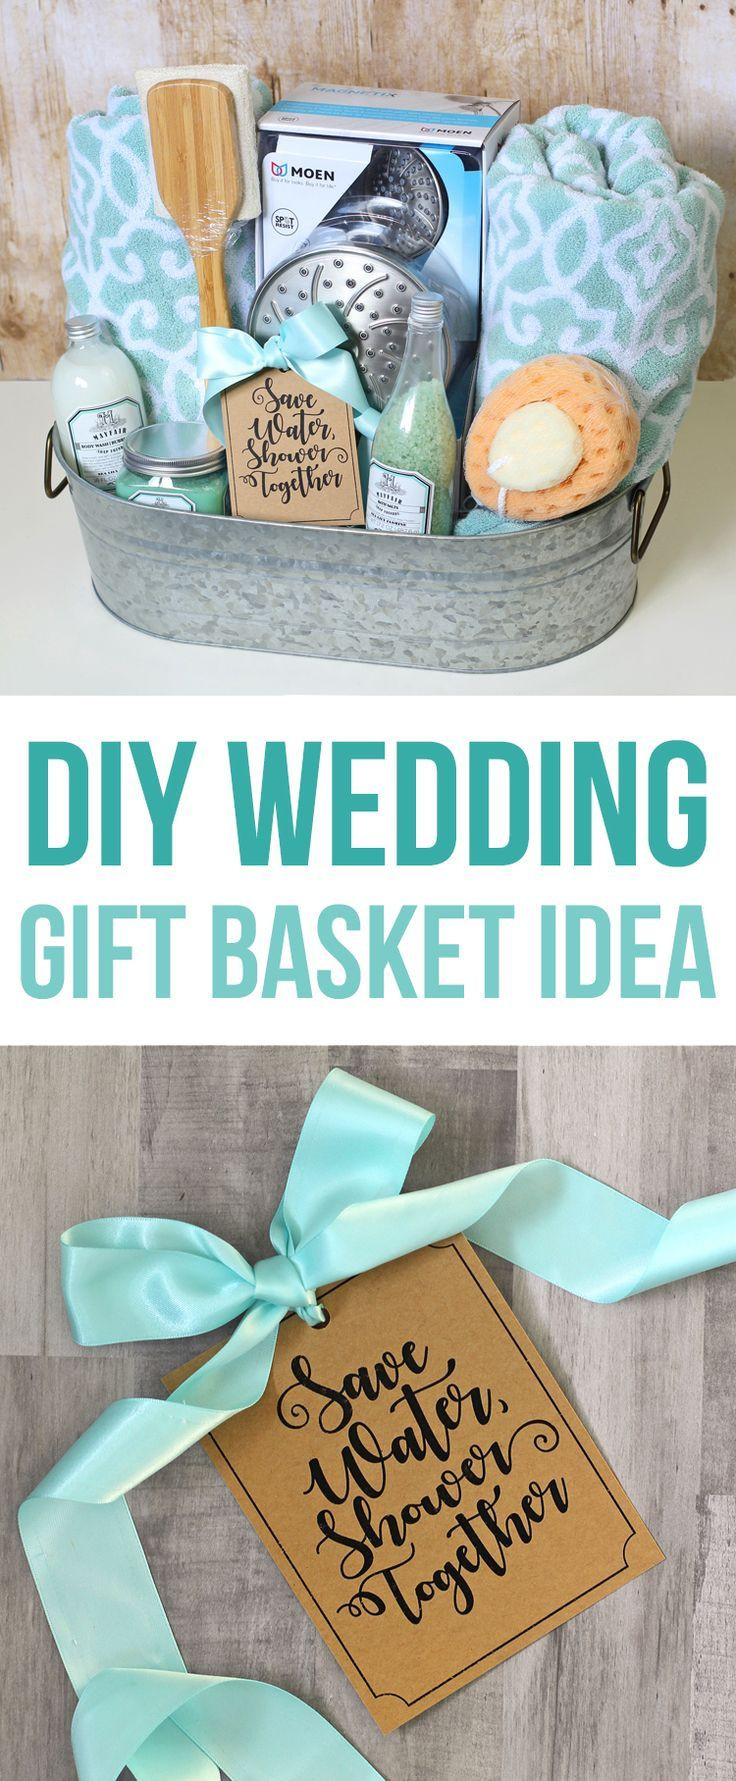 Best ideas about Cute Wedding Gift Ideas . Save or Pin This DIY wedding t basket idea has a shower theme and Now.